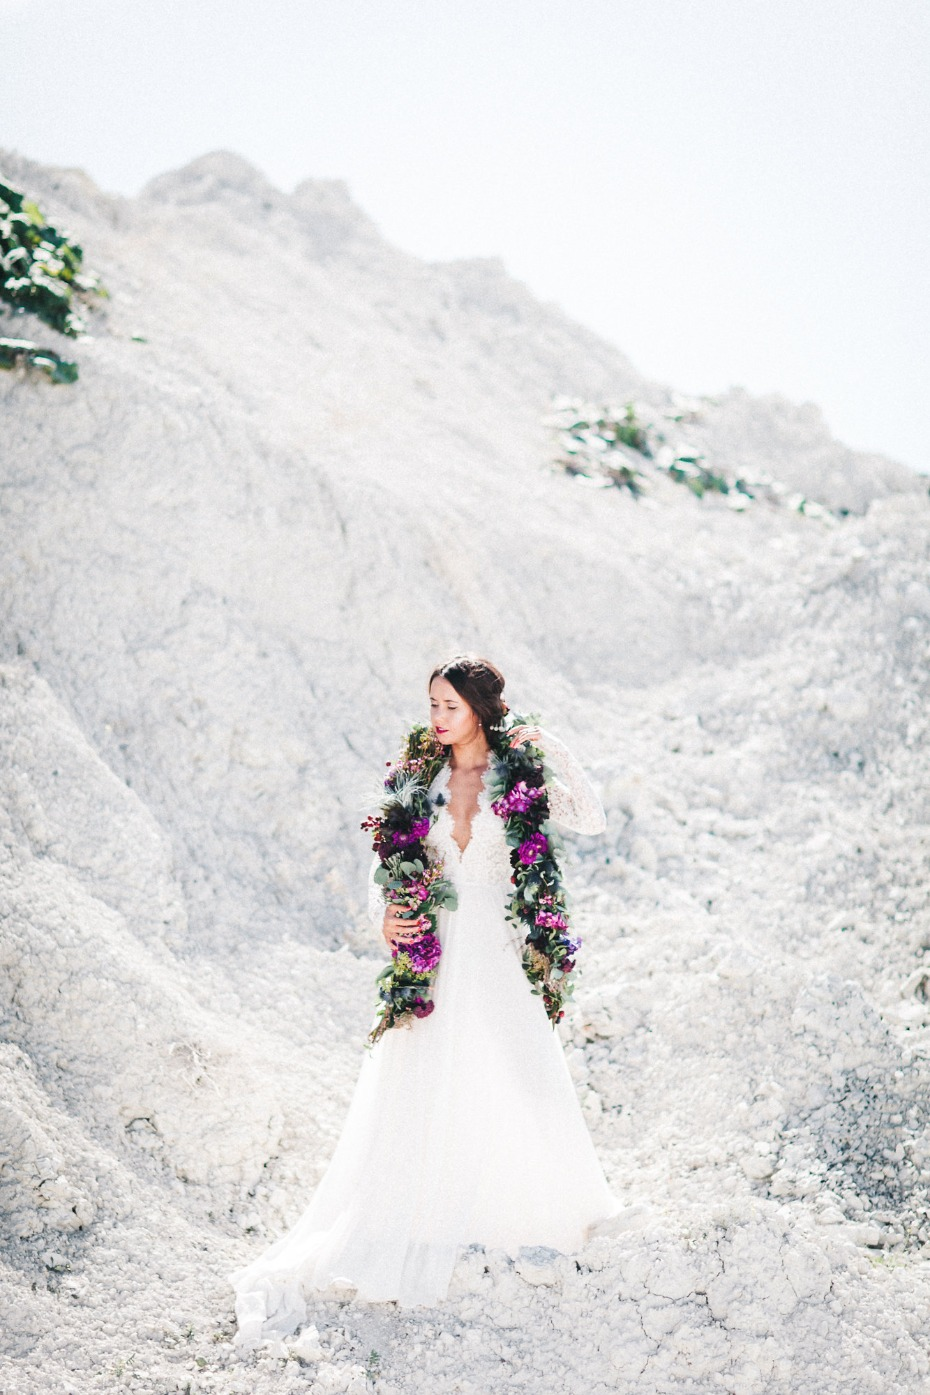 Berry beautiful stone quarry wedding inspiration